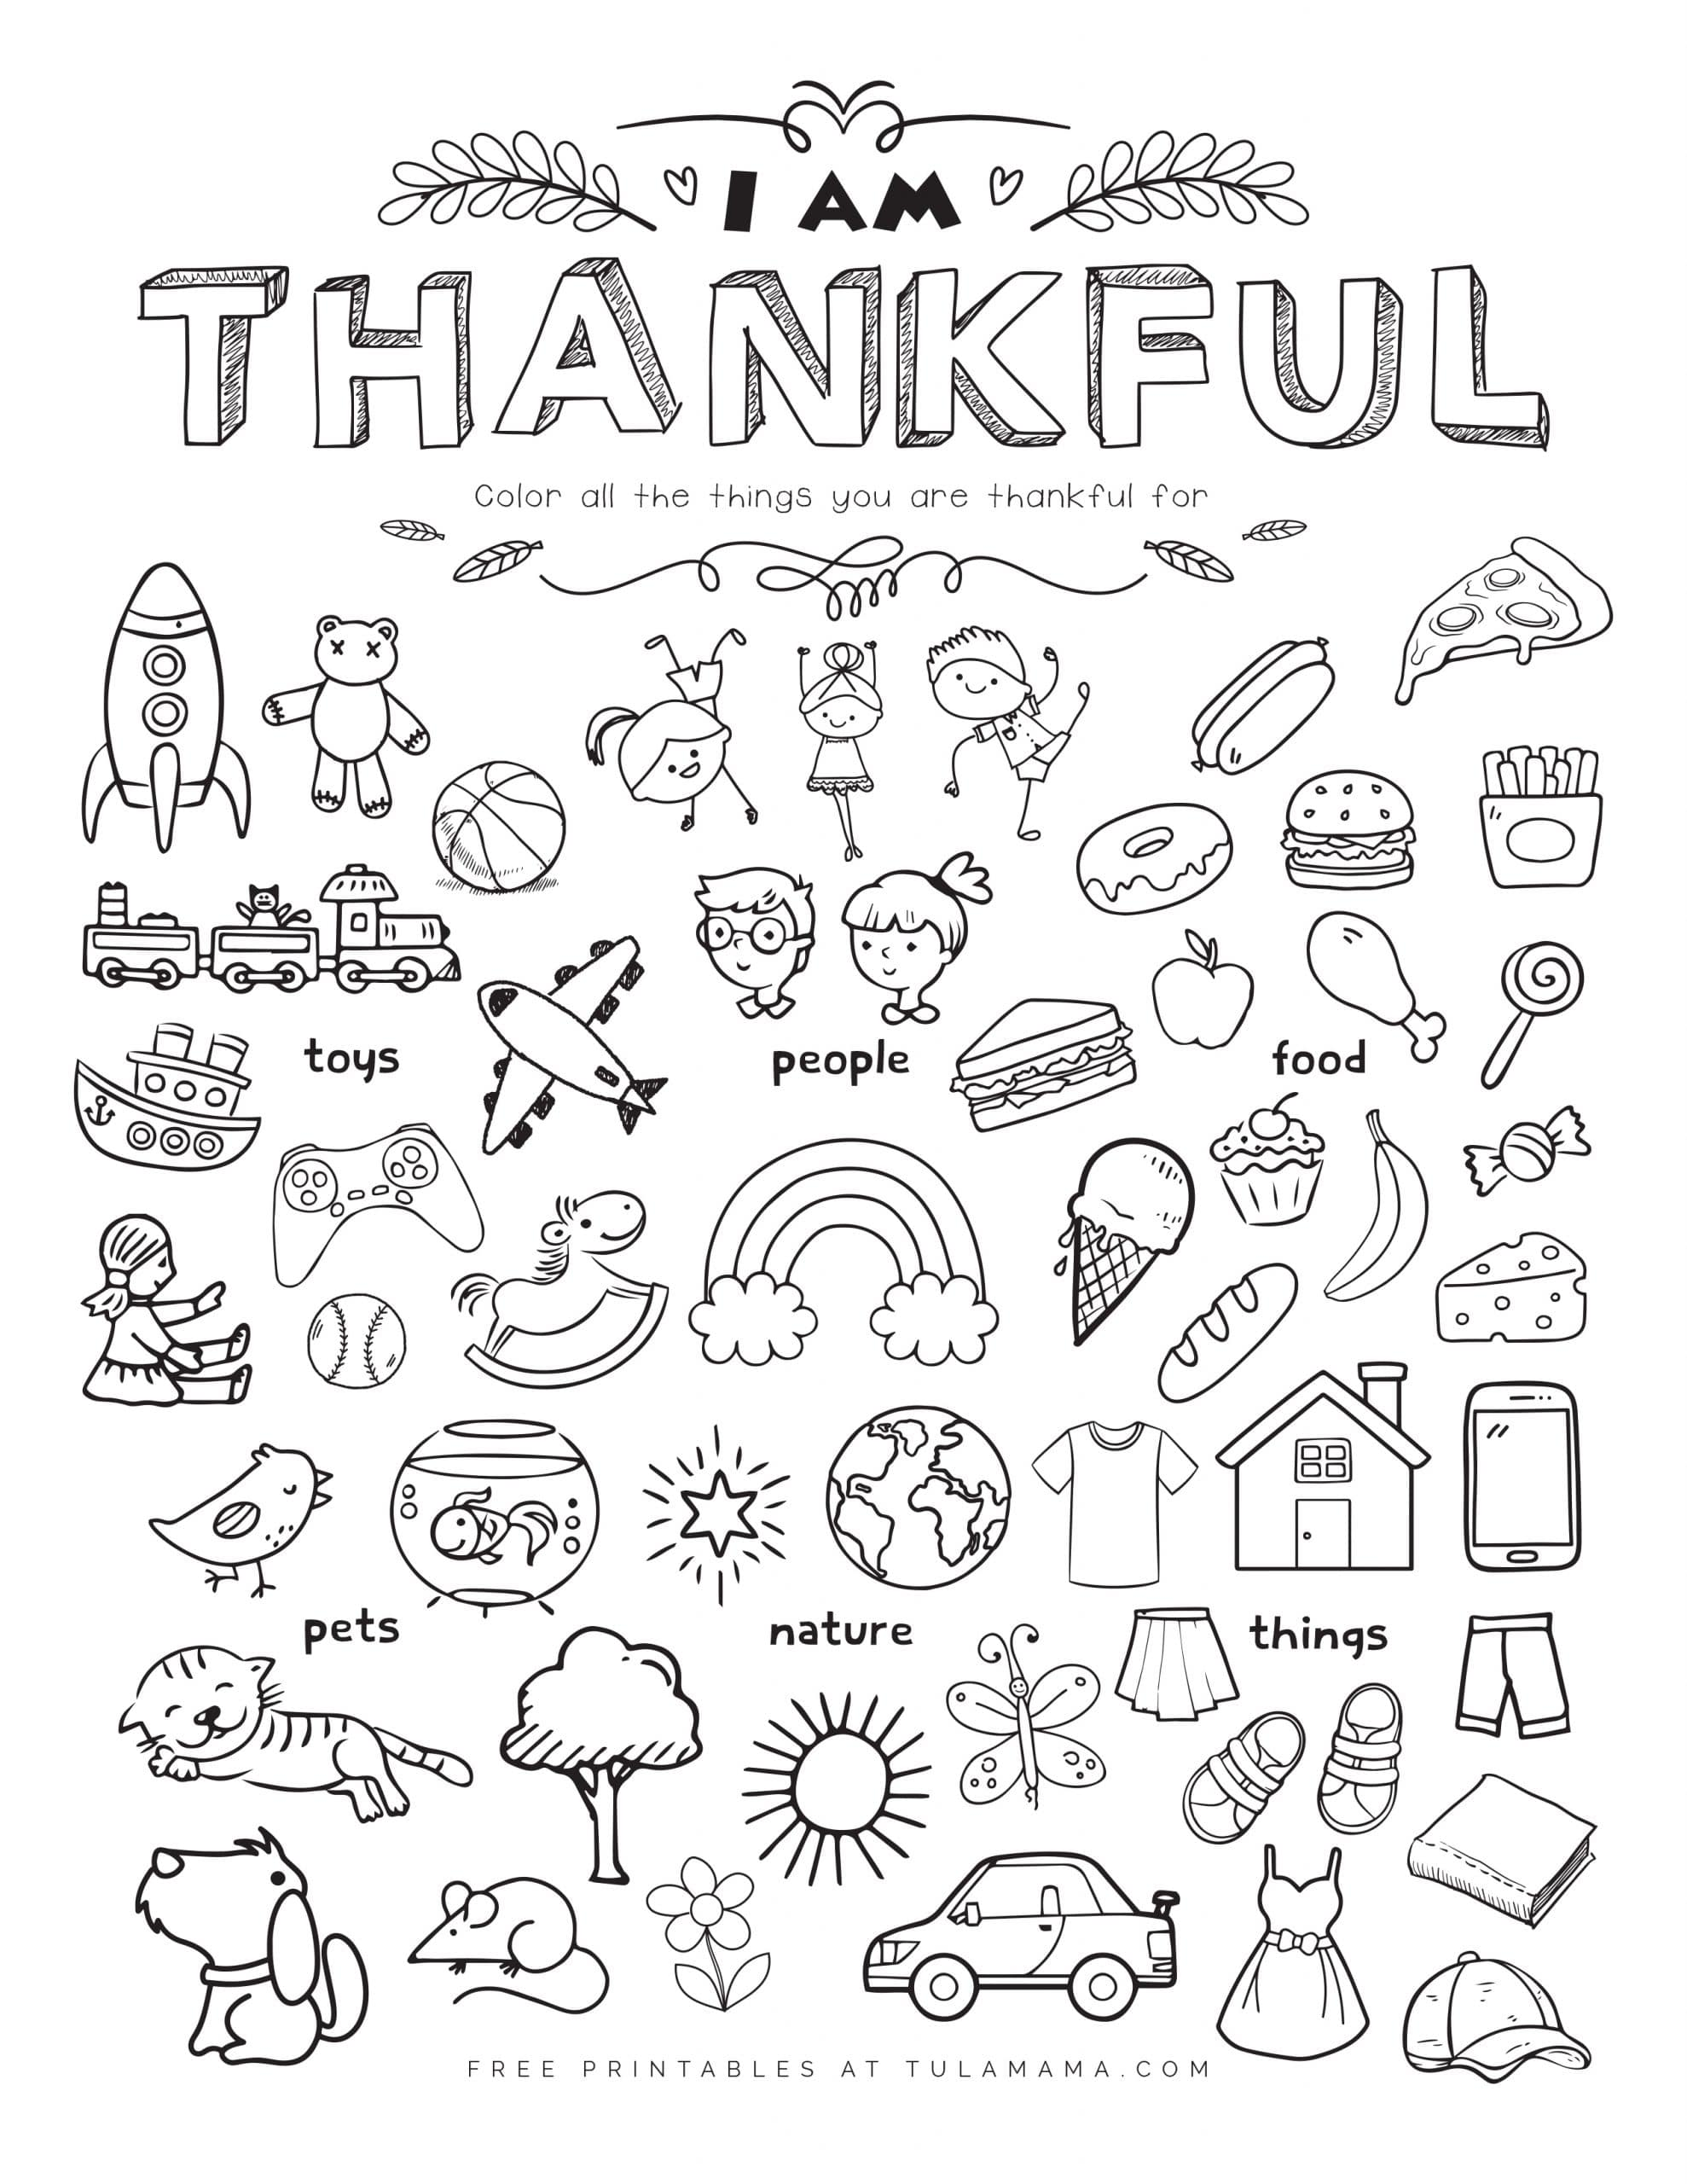 free printable am thankful for worksheet tulamama coloring scaled letters art and craft coloring pages I Am Thankful For Coloring Page